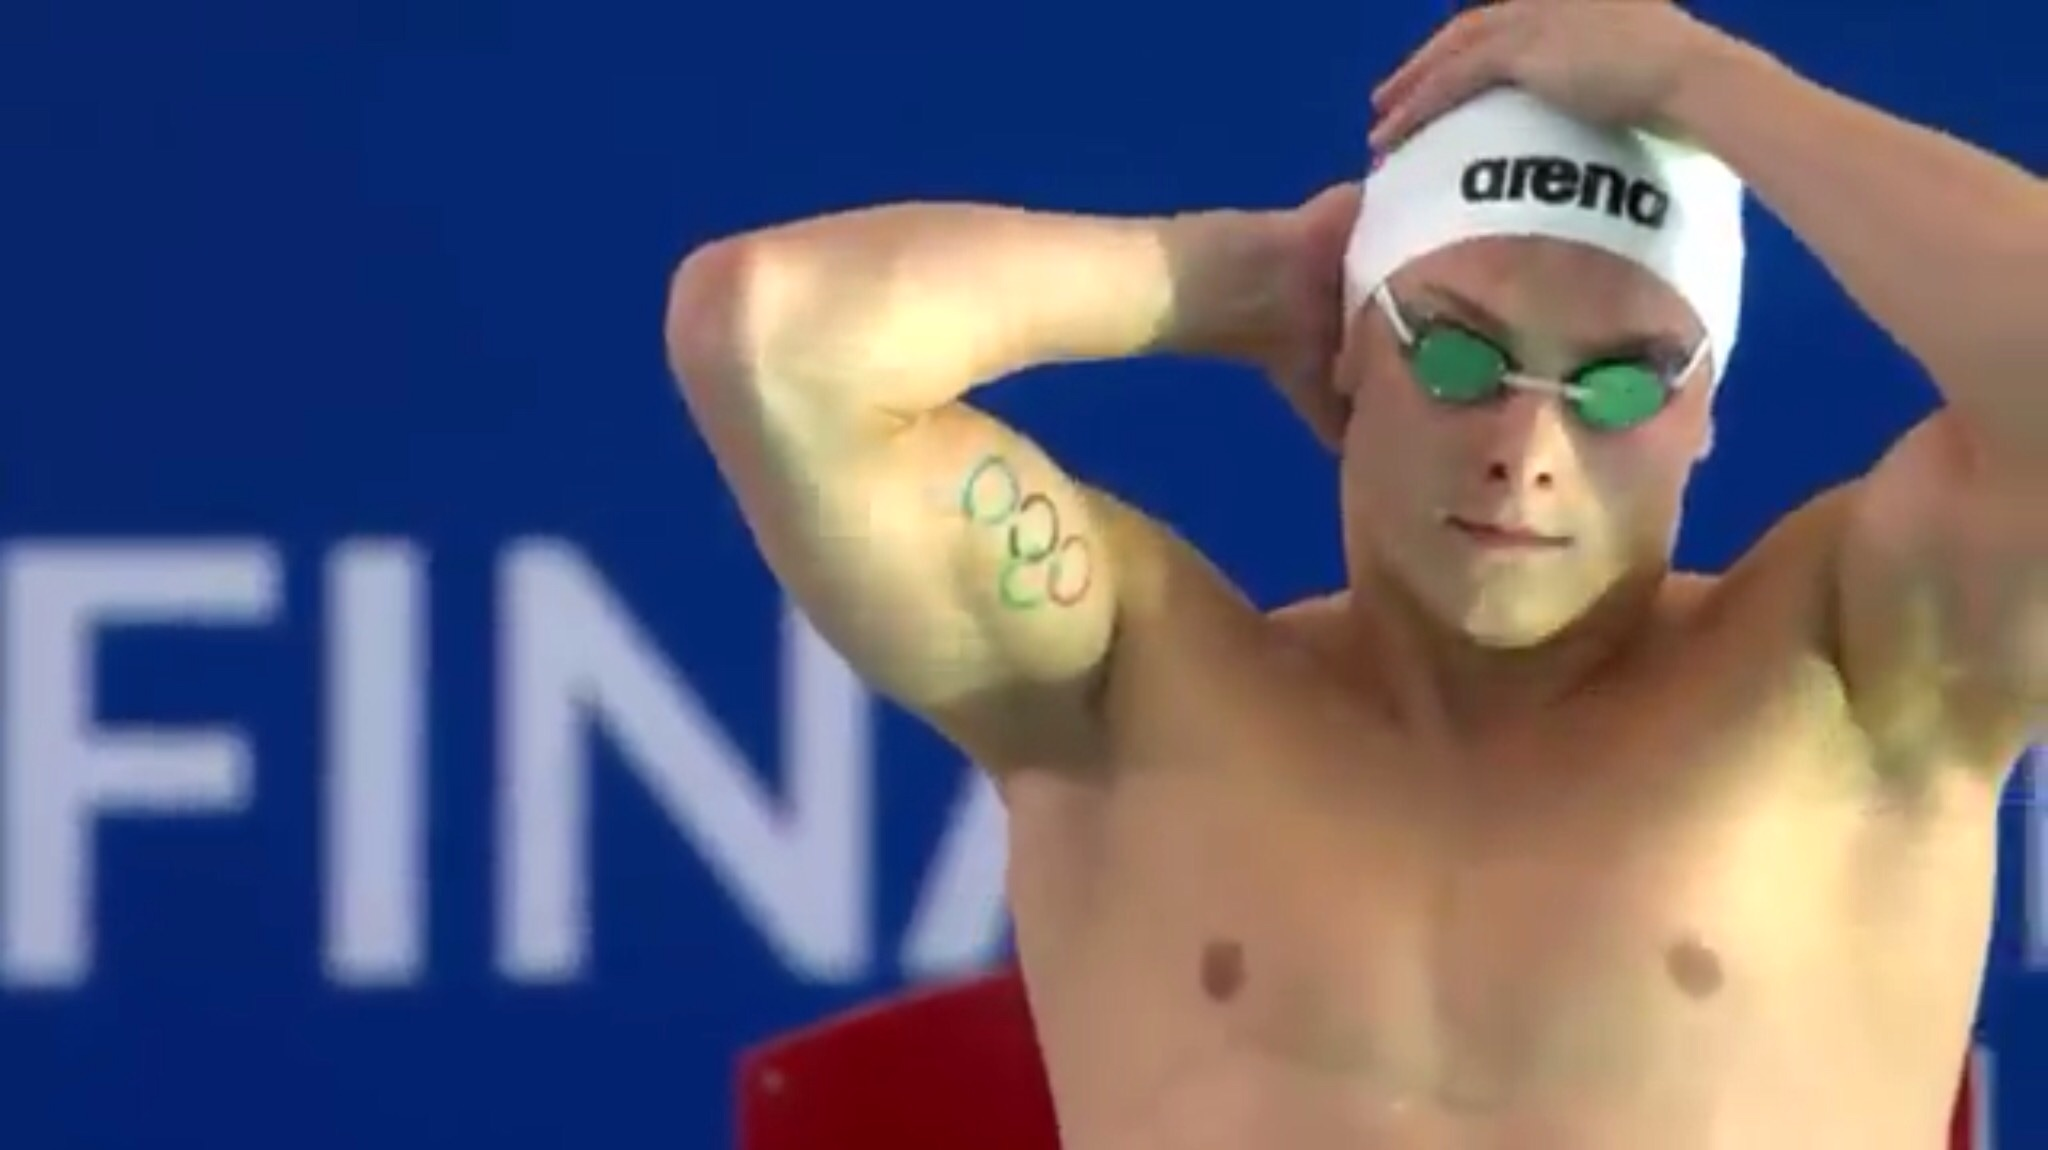 Vladimir Morozov (RUS) 50.60 and new 100 IM World Record